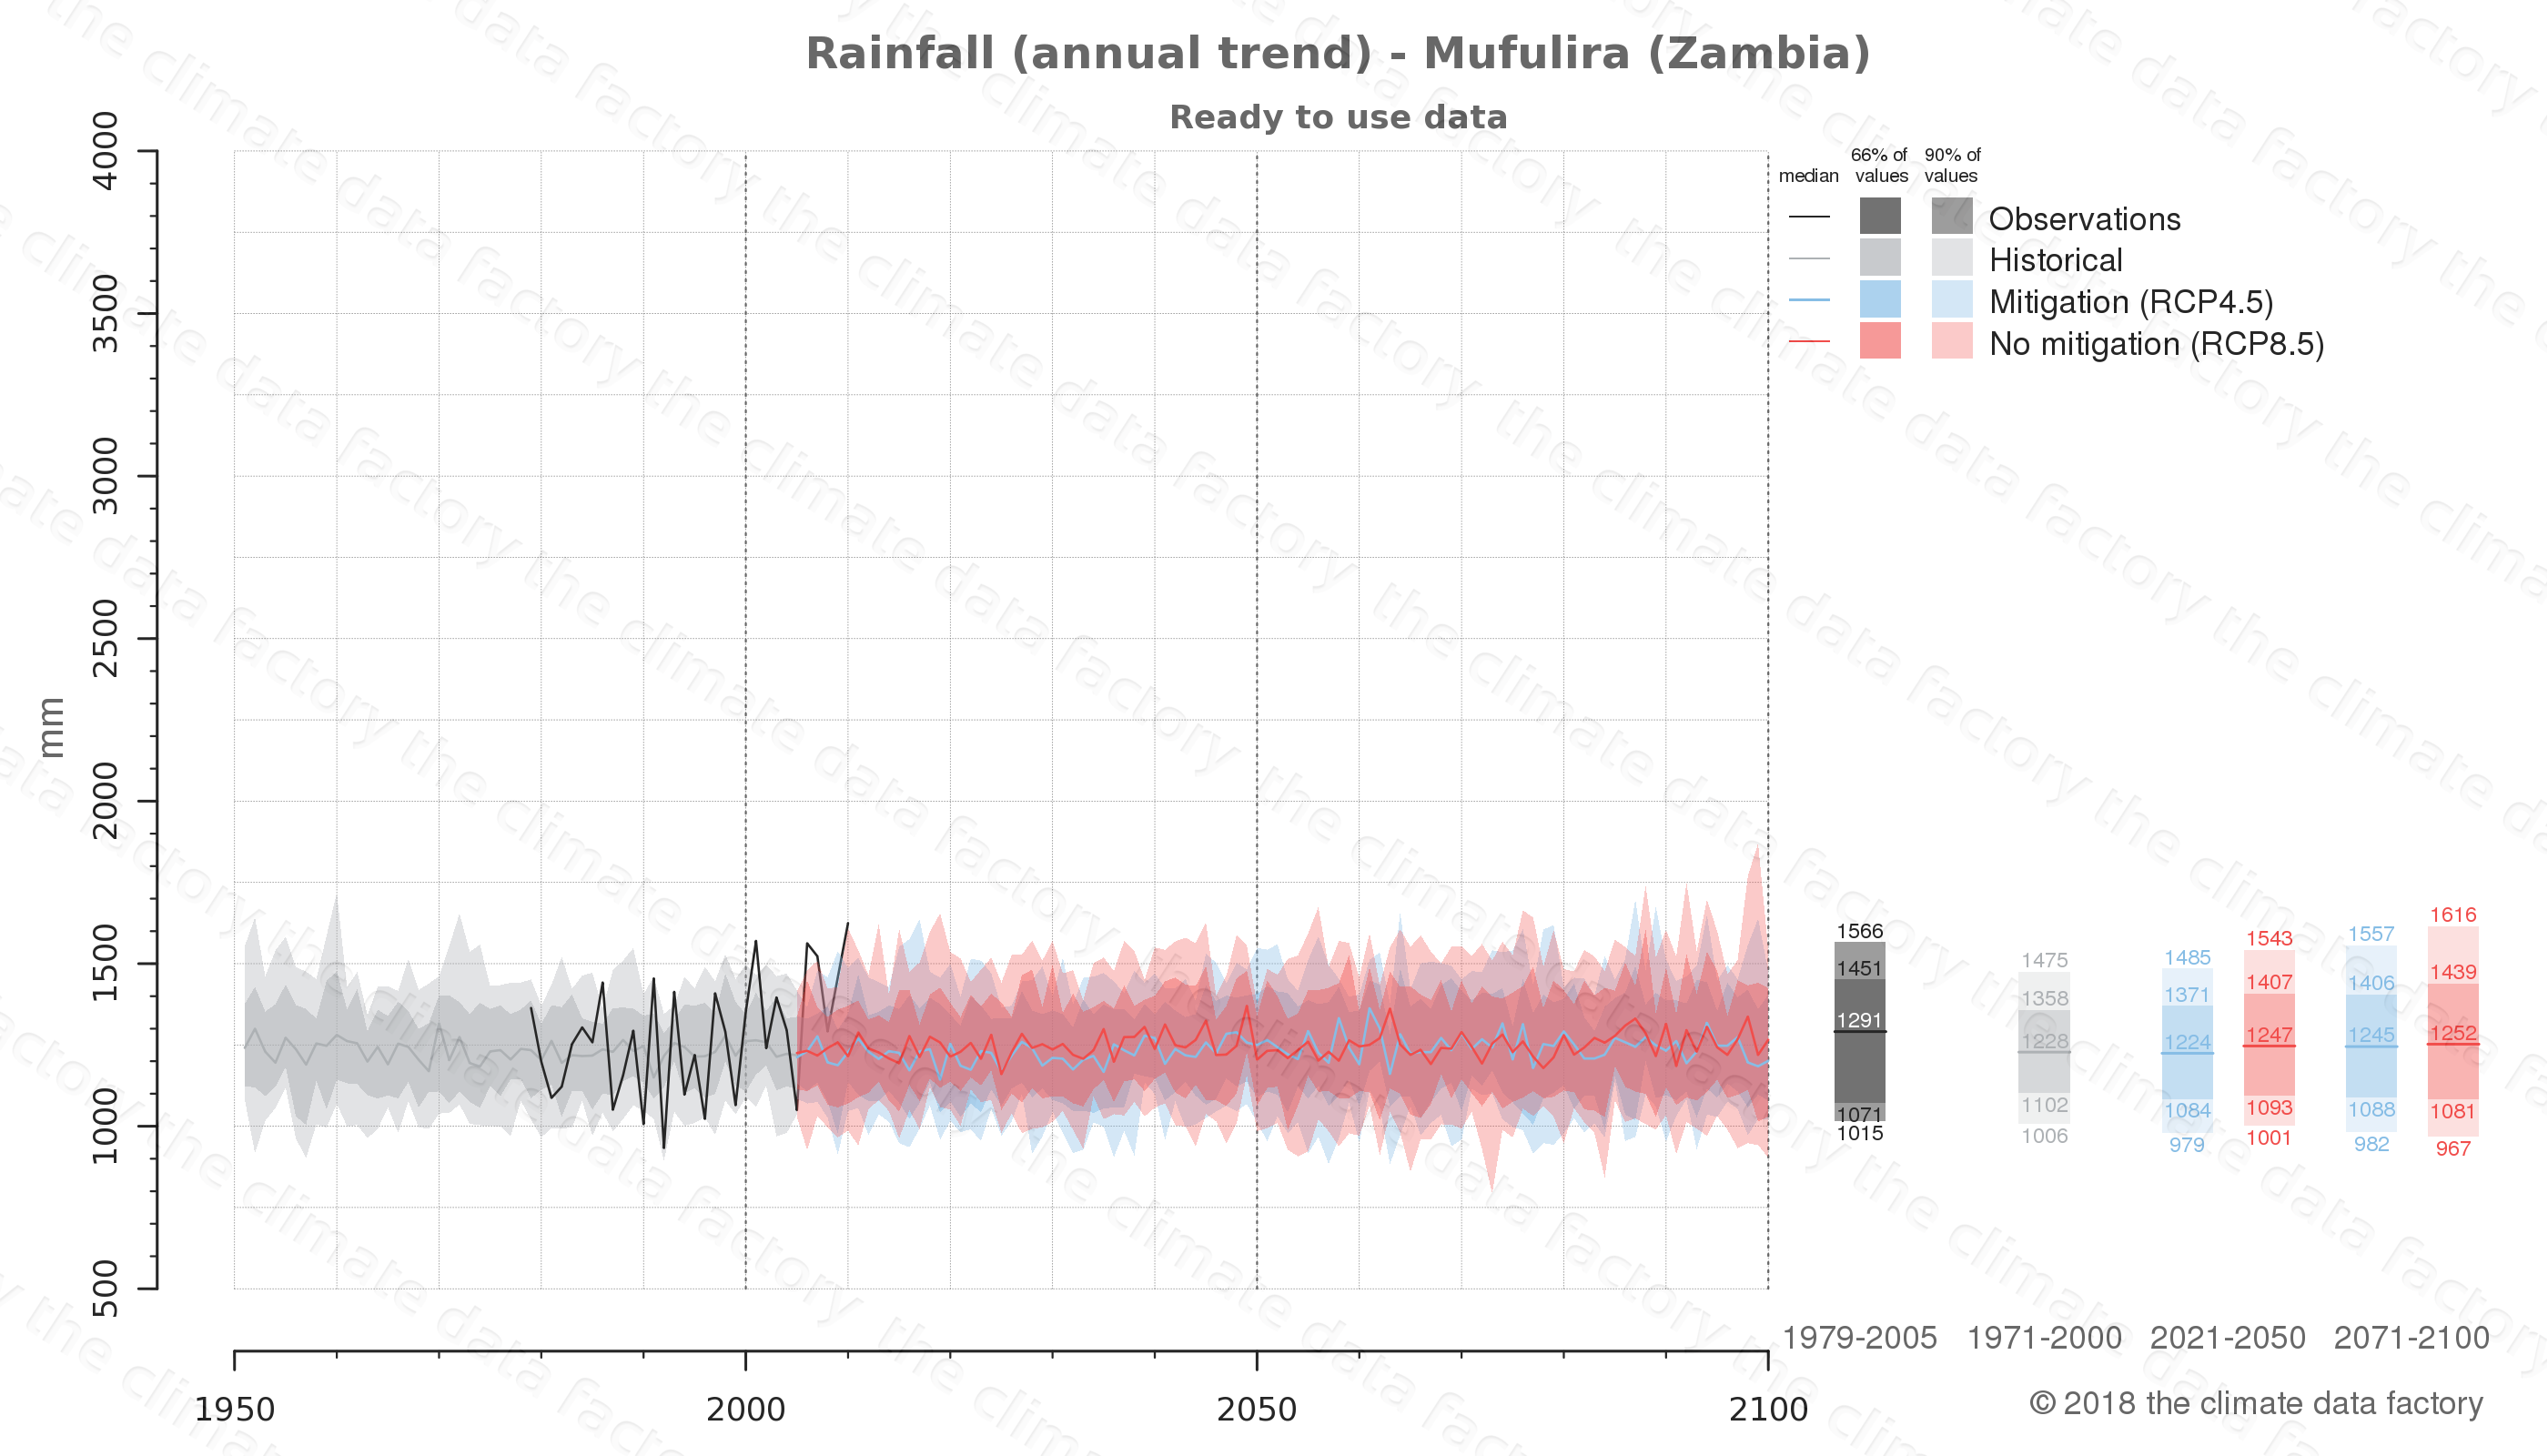 climate change data policy adaptation climate graph city data rainfall mufulira zambia